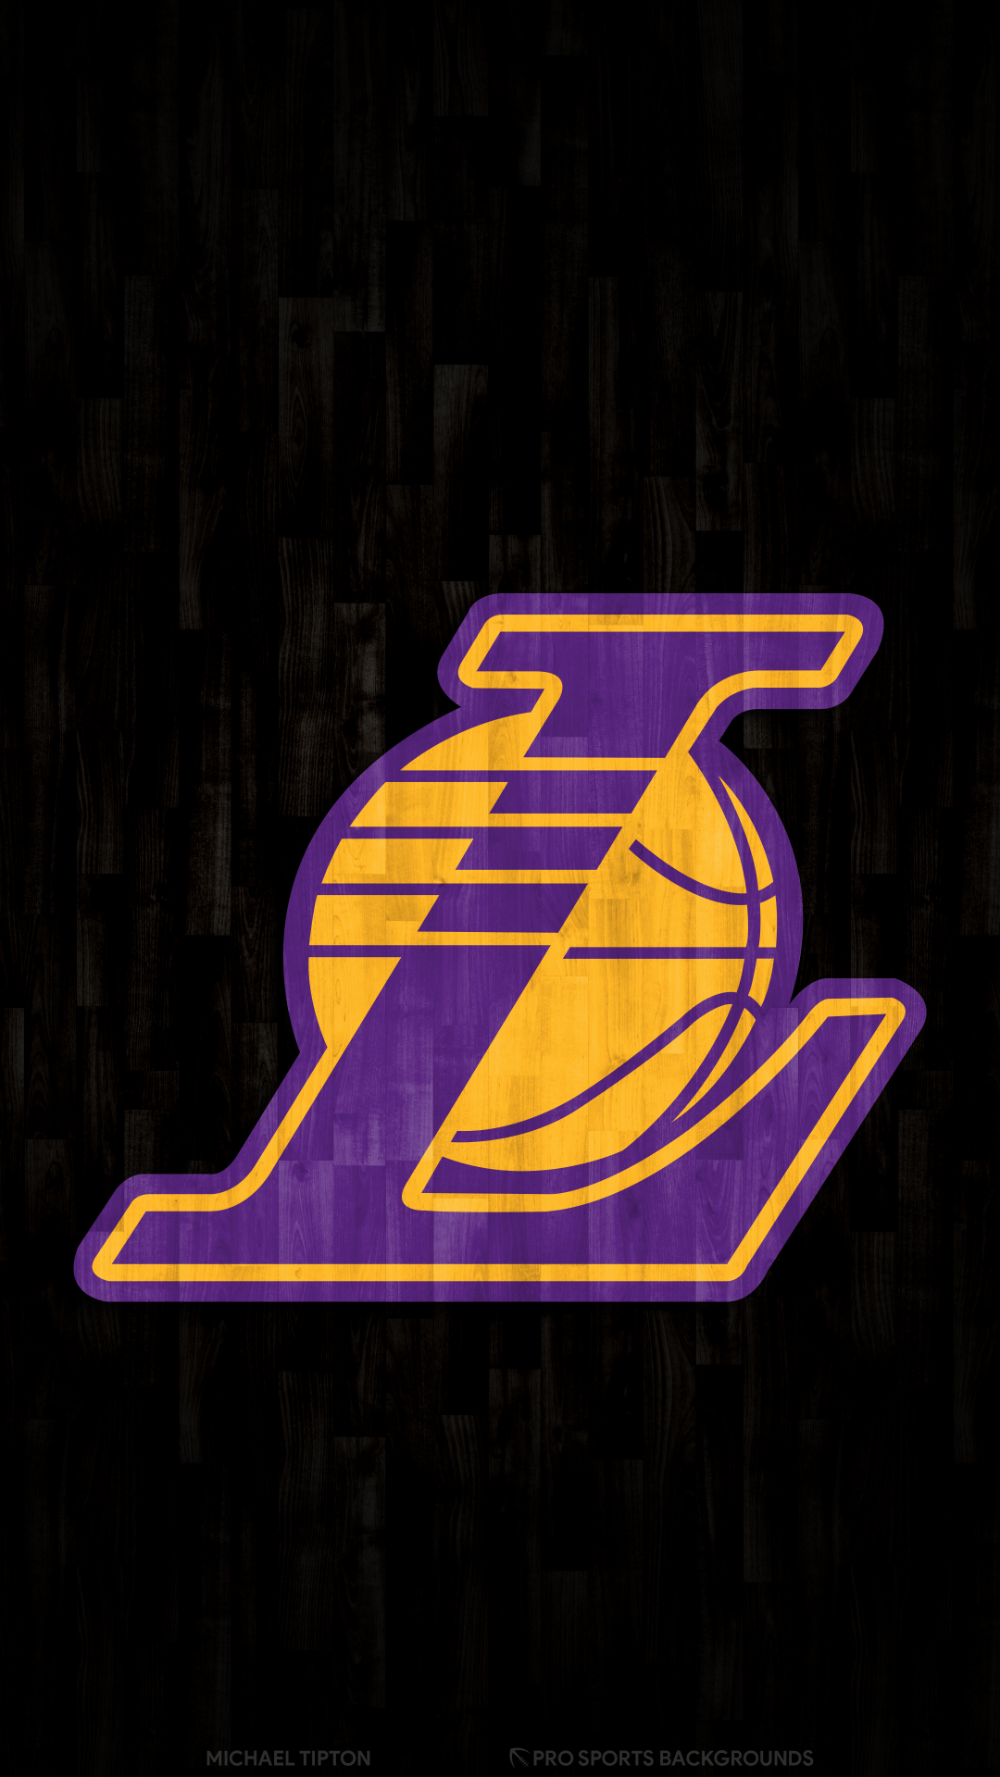 Los Angeles Lakers Wallpapers P Basketball Lakers Wallpaper Los Angeles Lakers Nba